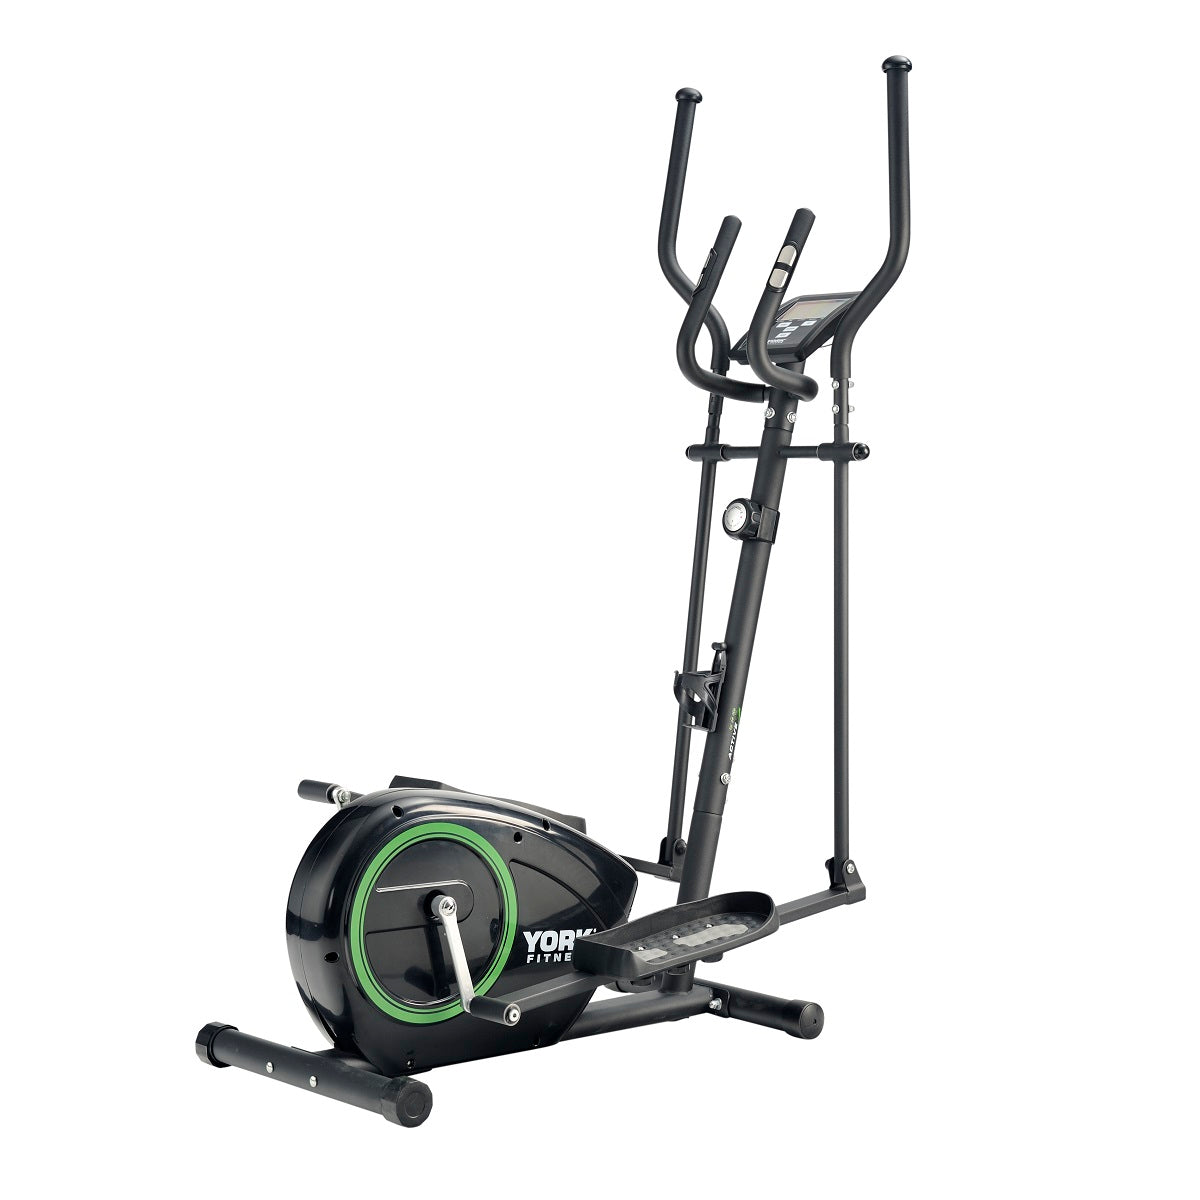 York Fitness Active 110 Cross Trainer Elliptical Trainer